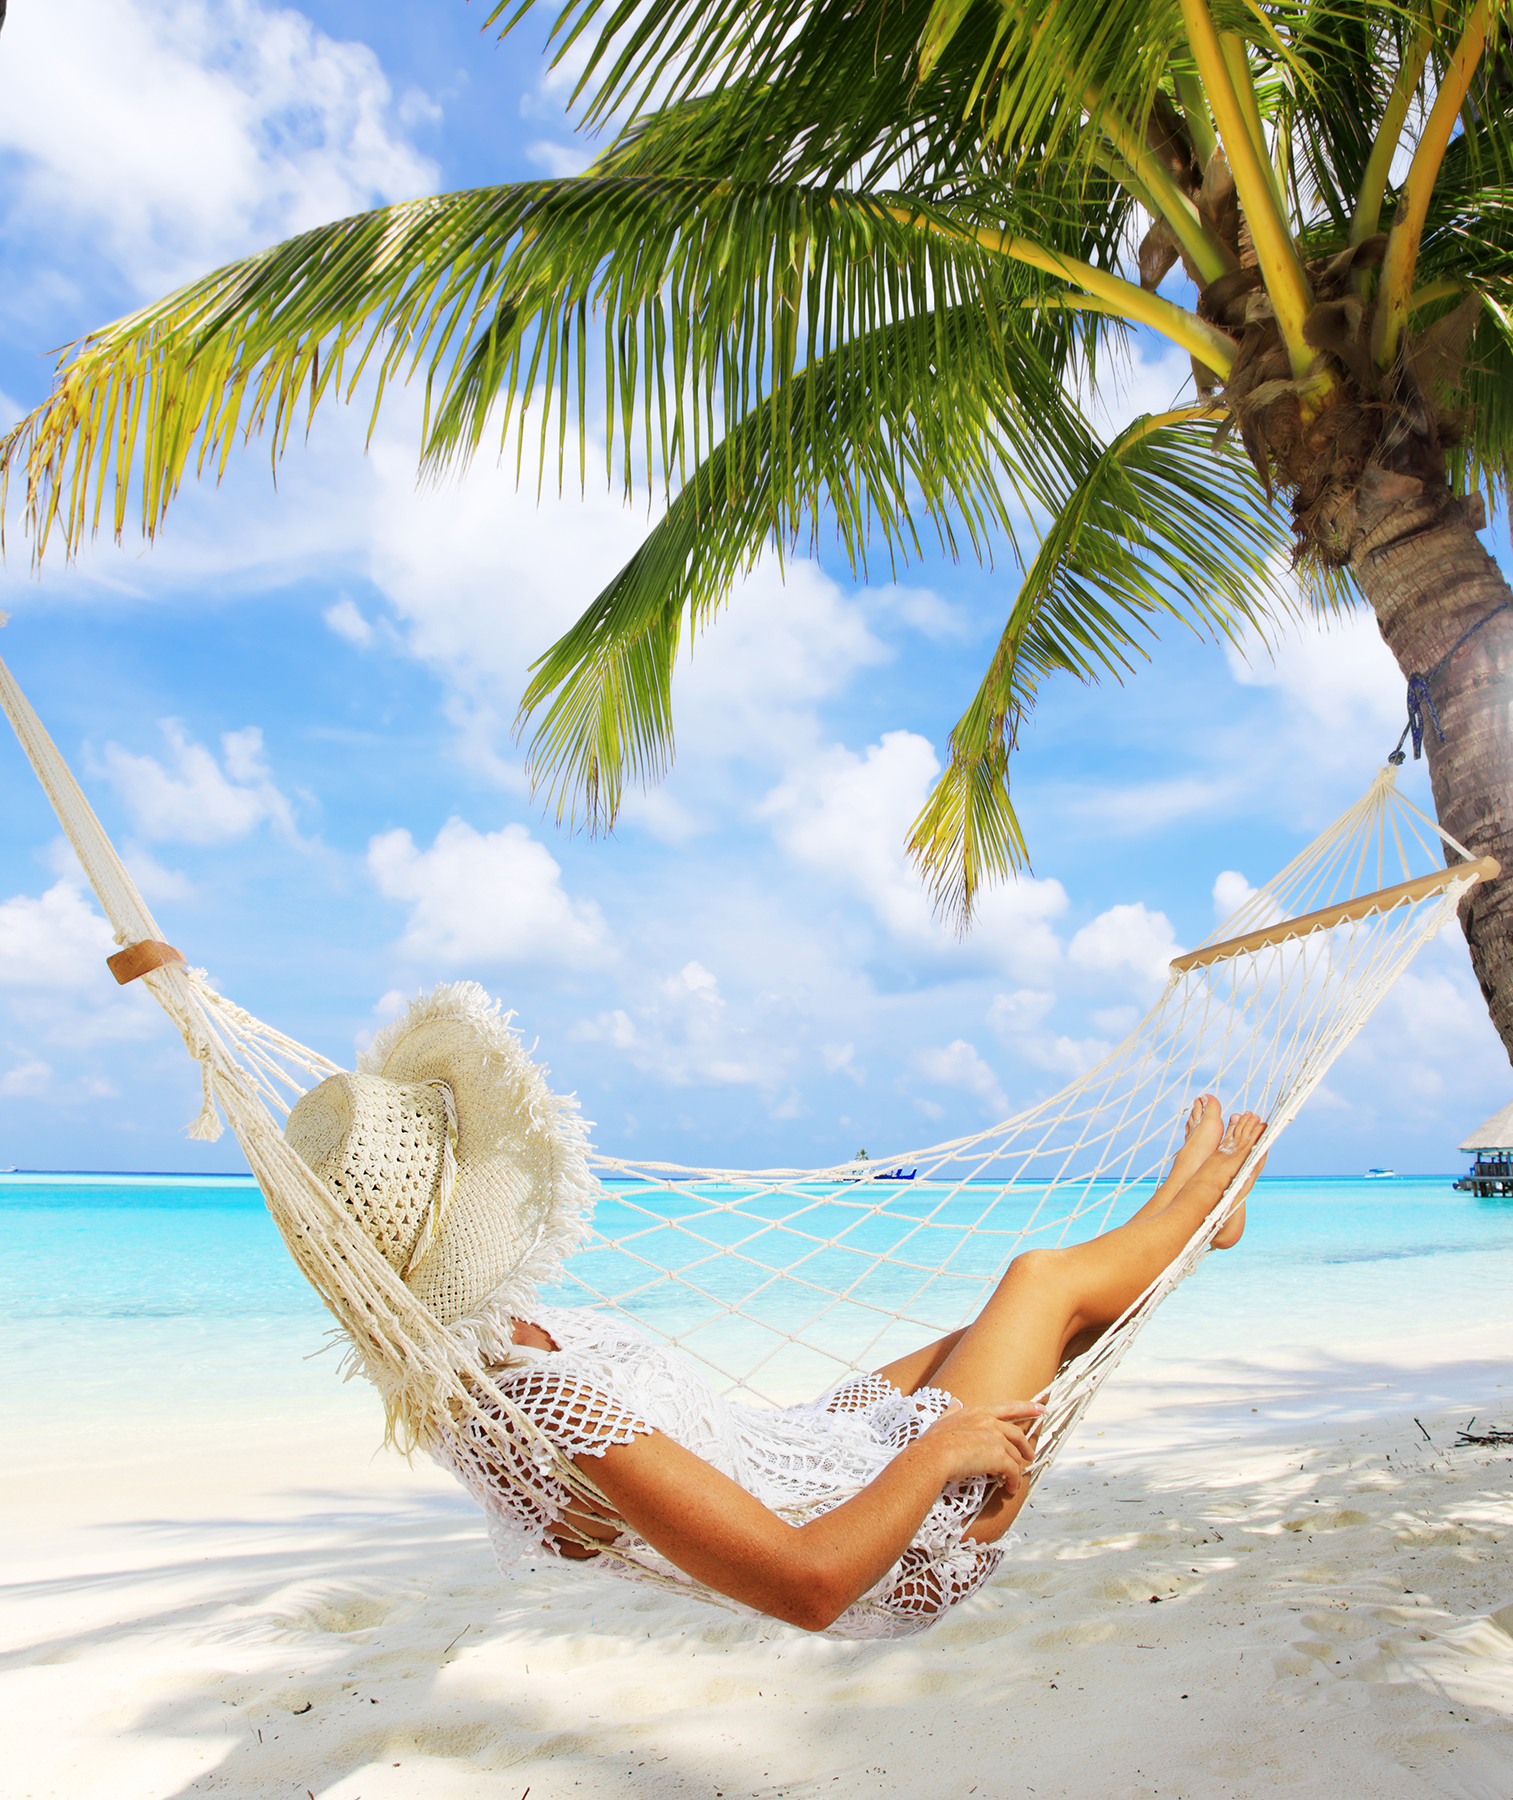 woman-beach-hammock-vacation